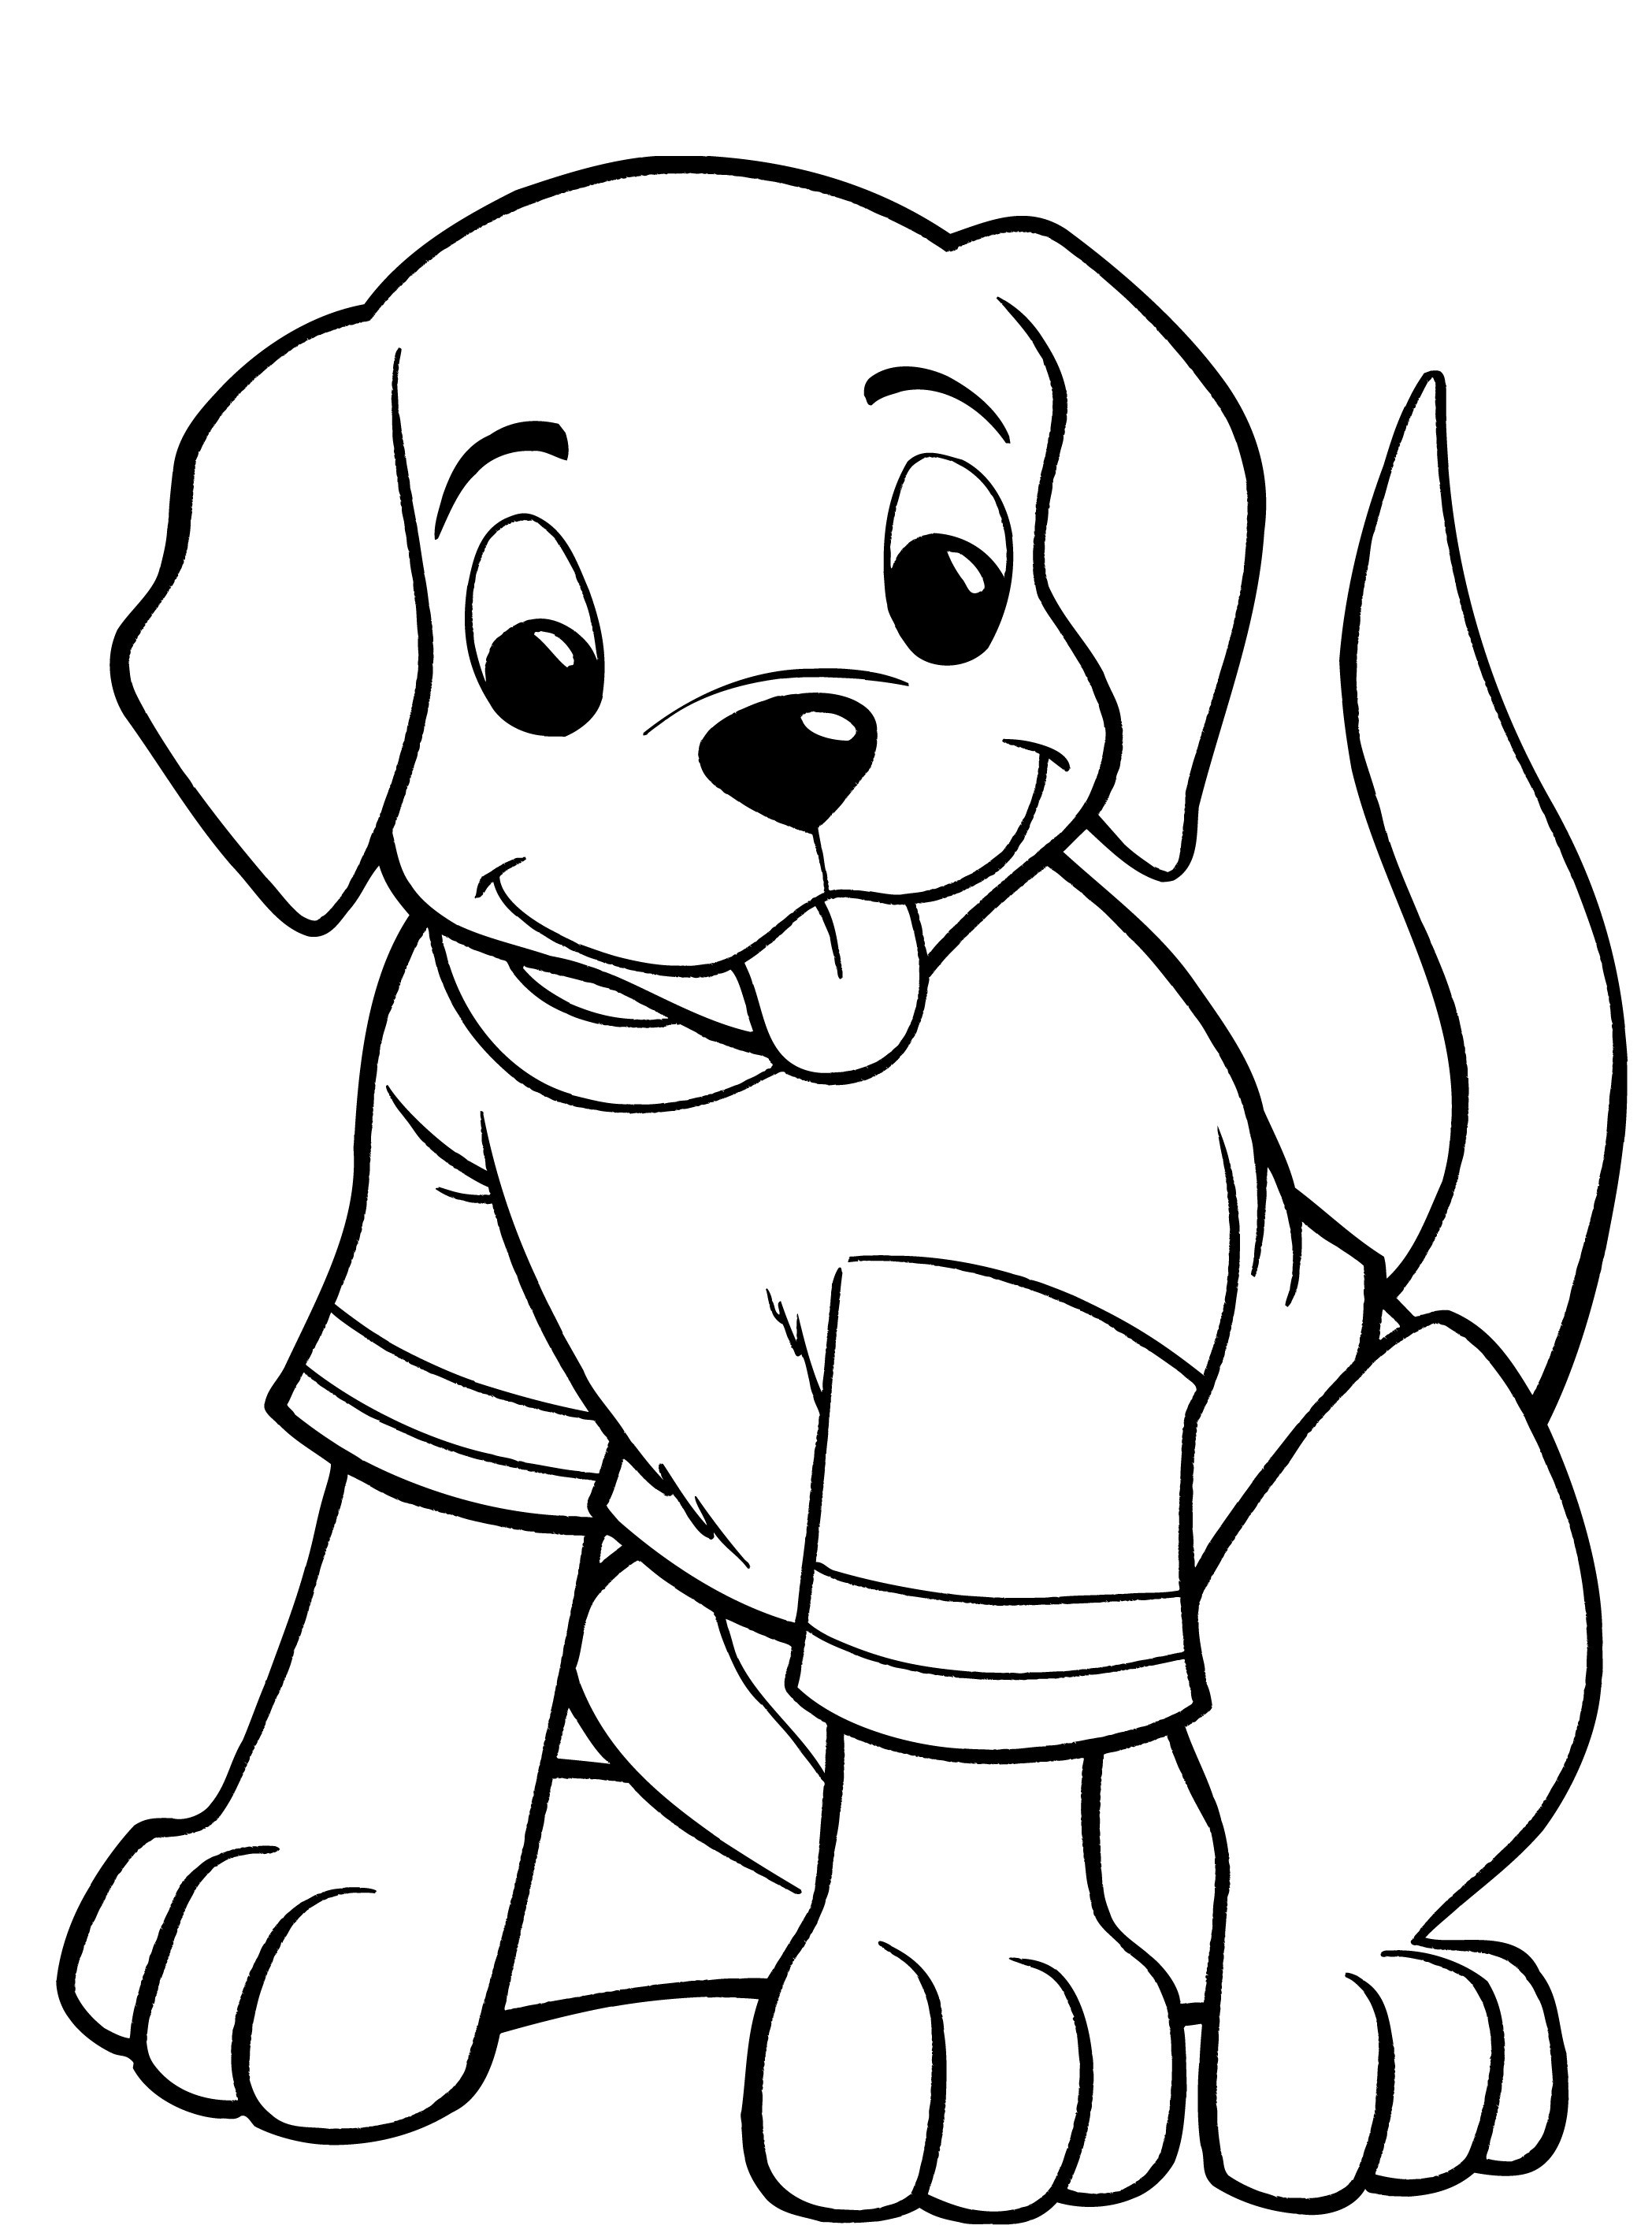 Cute Dog Kindergarten Coloring Pages